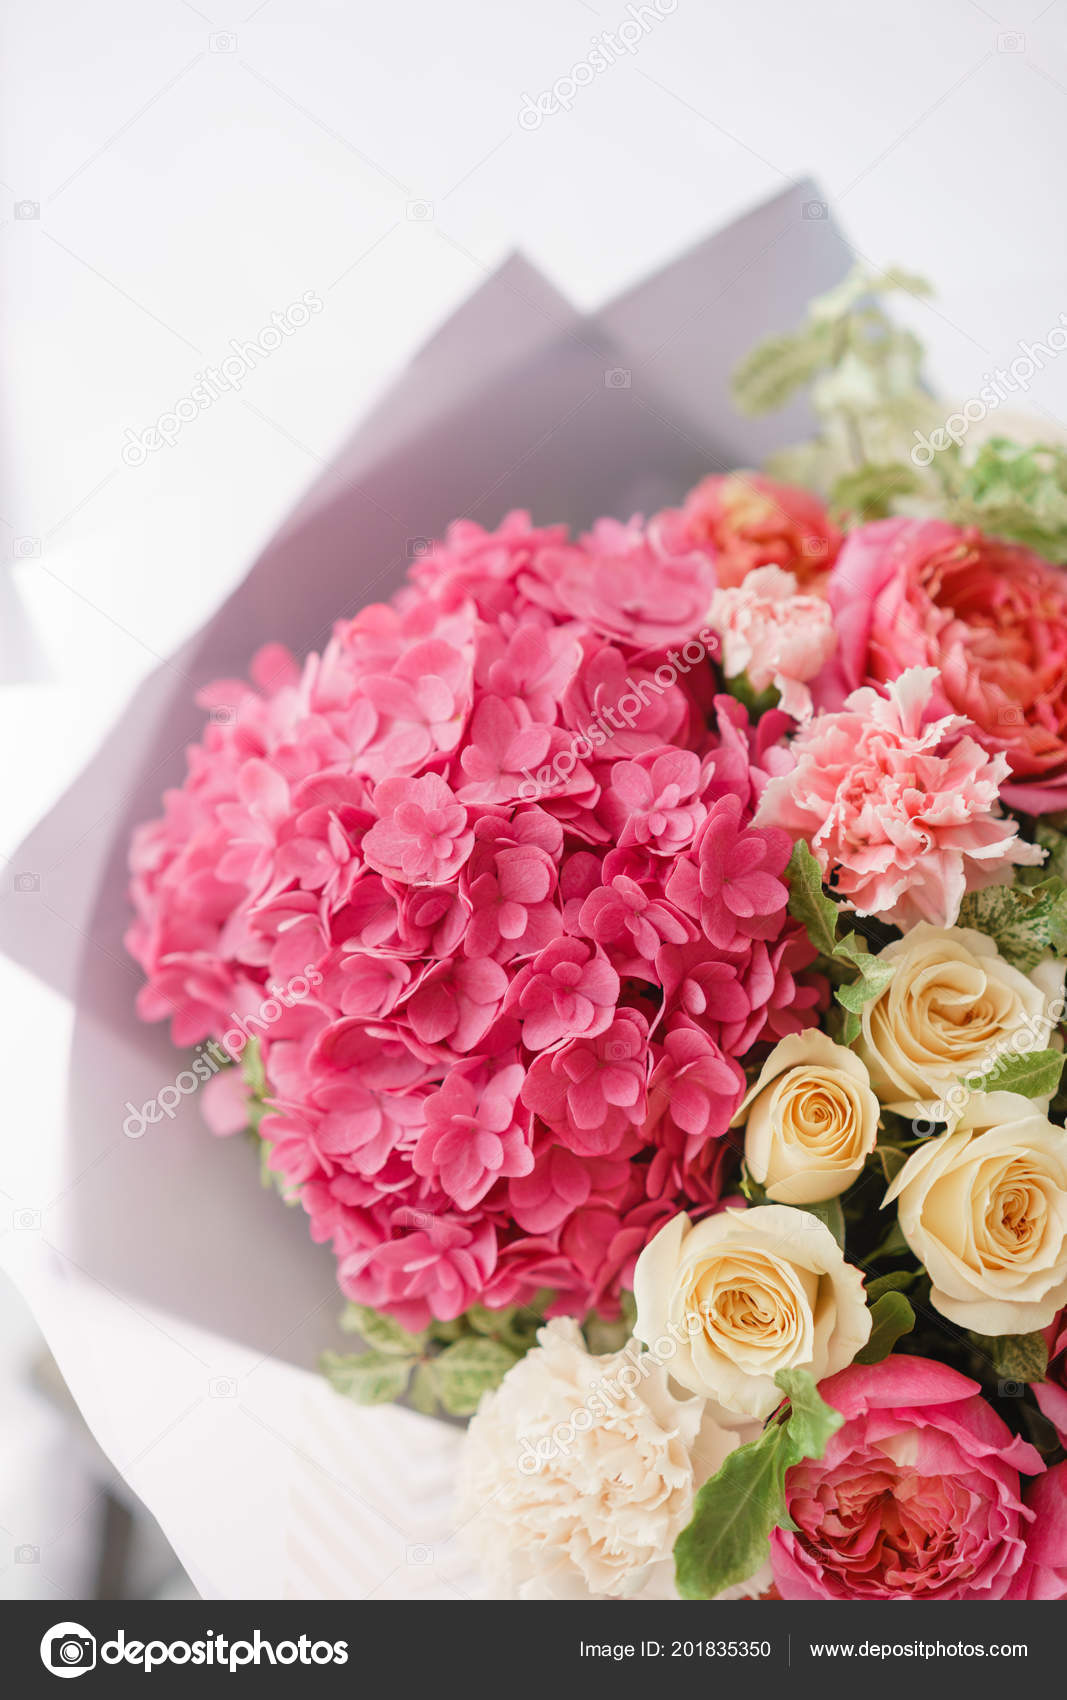 Small Pink Flower Centerpieces Beautiful Spring Bouquet Flower Arrangement With Hydrangea And Peonies Roses Color Light Pink The Concept Of A Flower Shop A Small Family Business Stock Photo C Malkovkosta 201835350